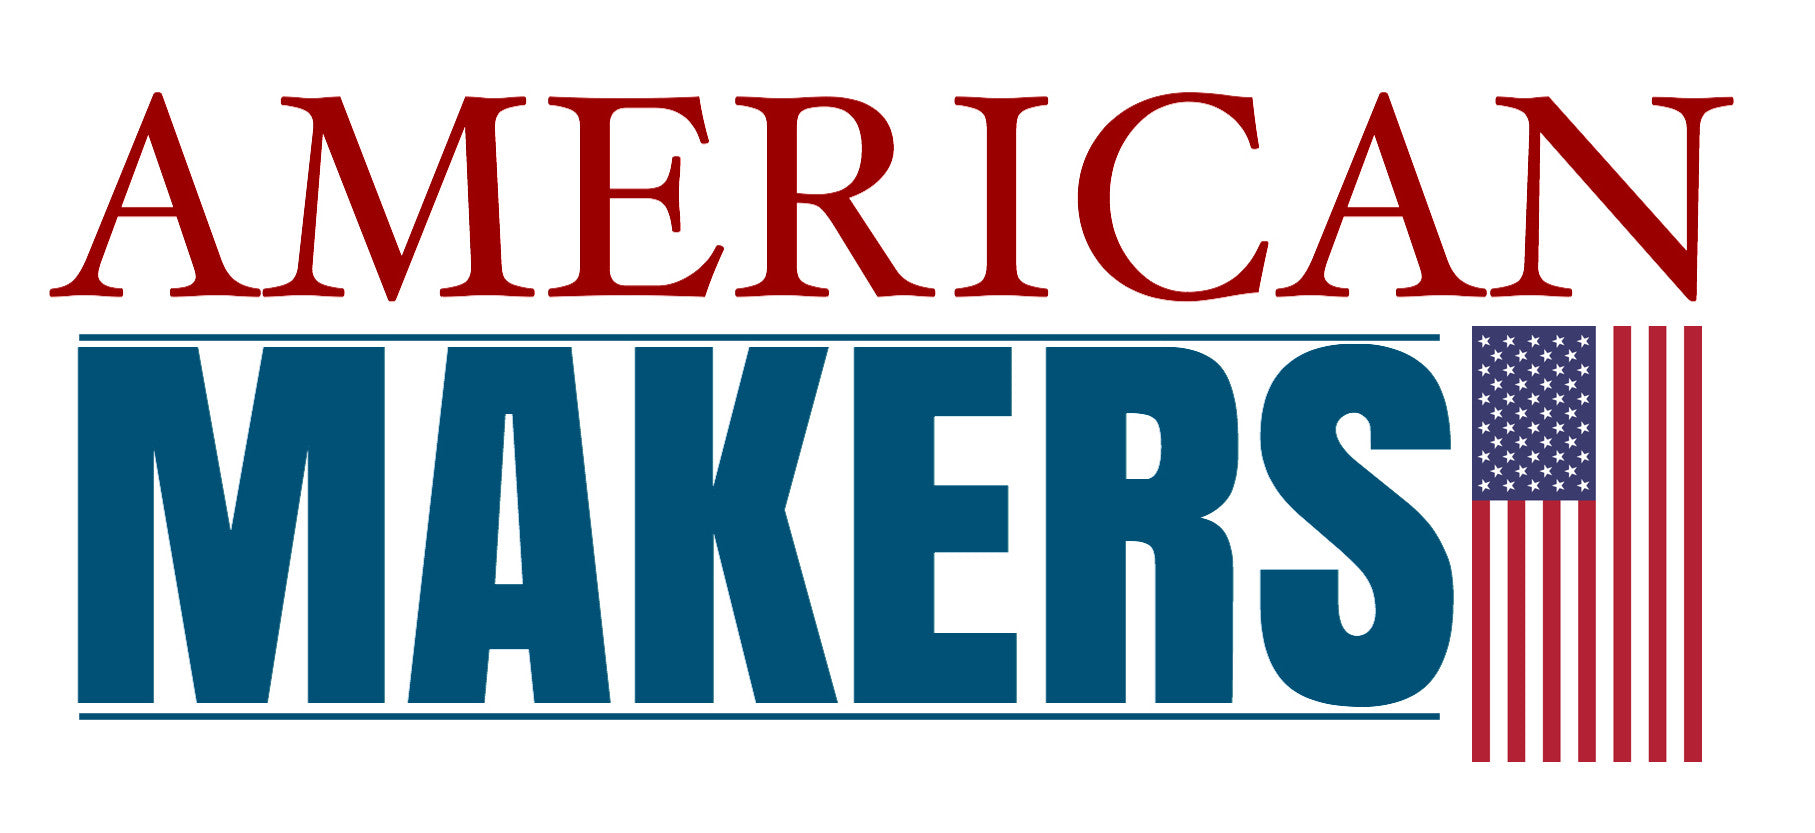 Introducing American Makers